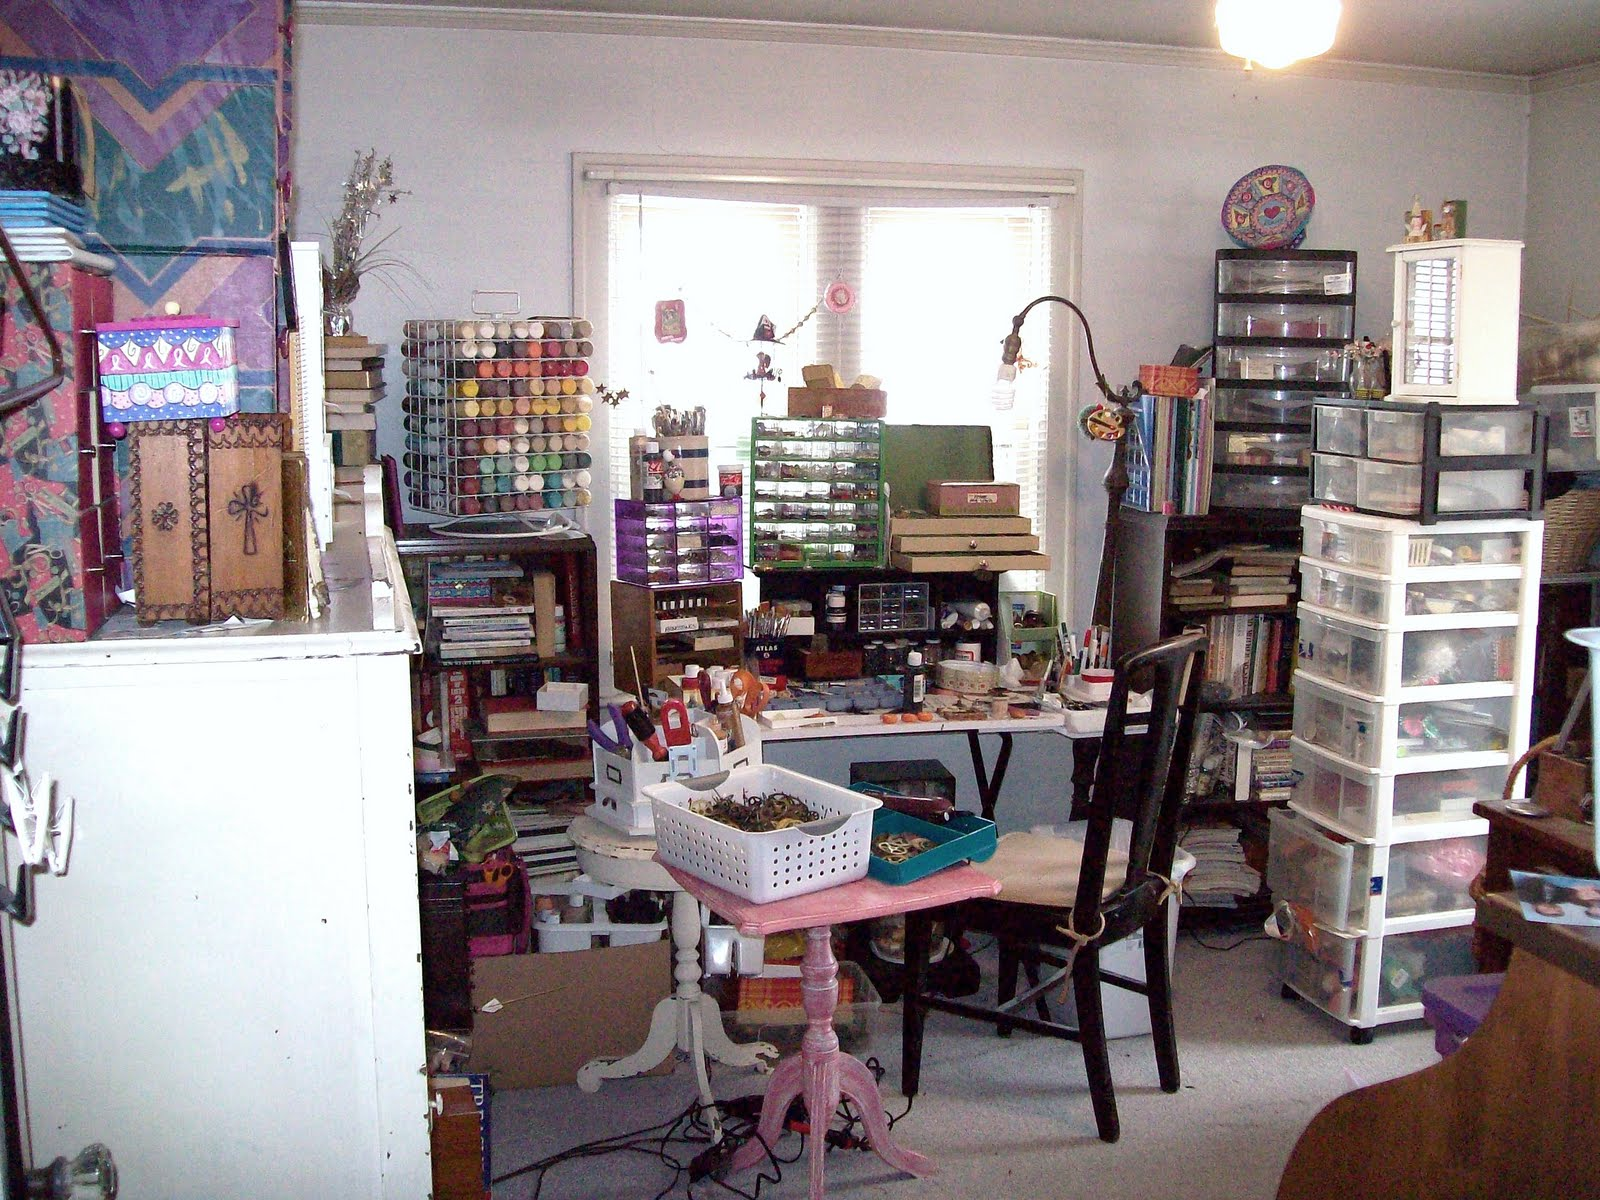 The Stars In Barb's Eyes: My Art Space